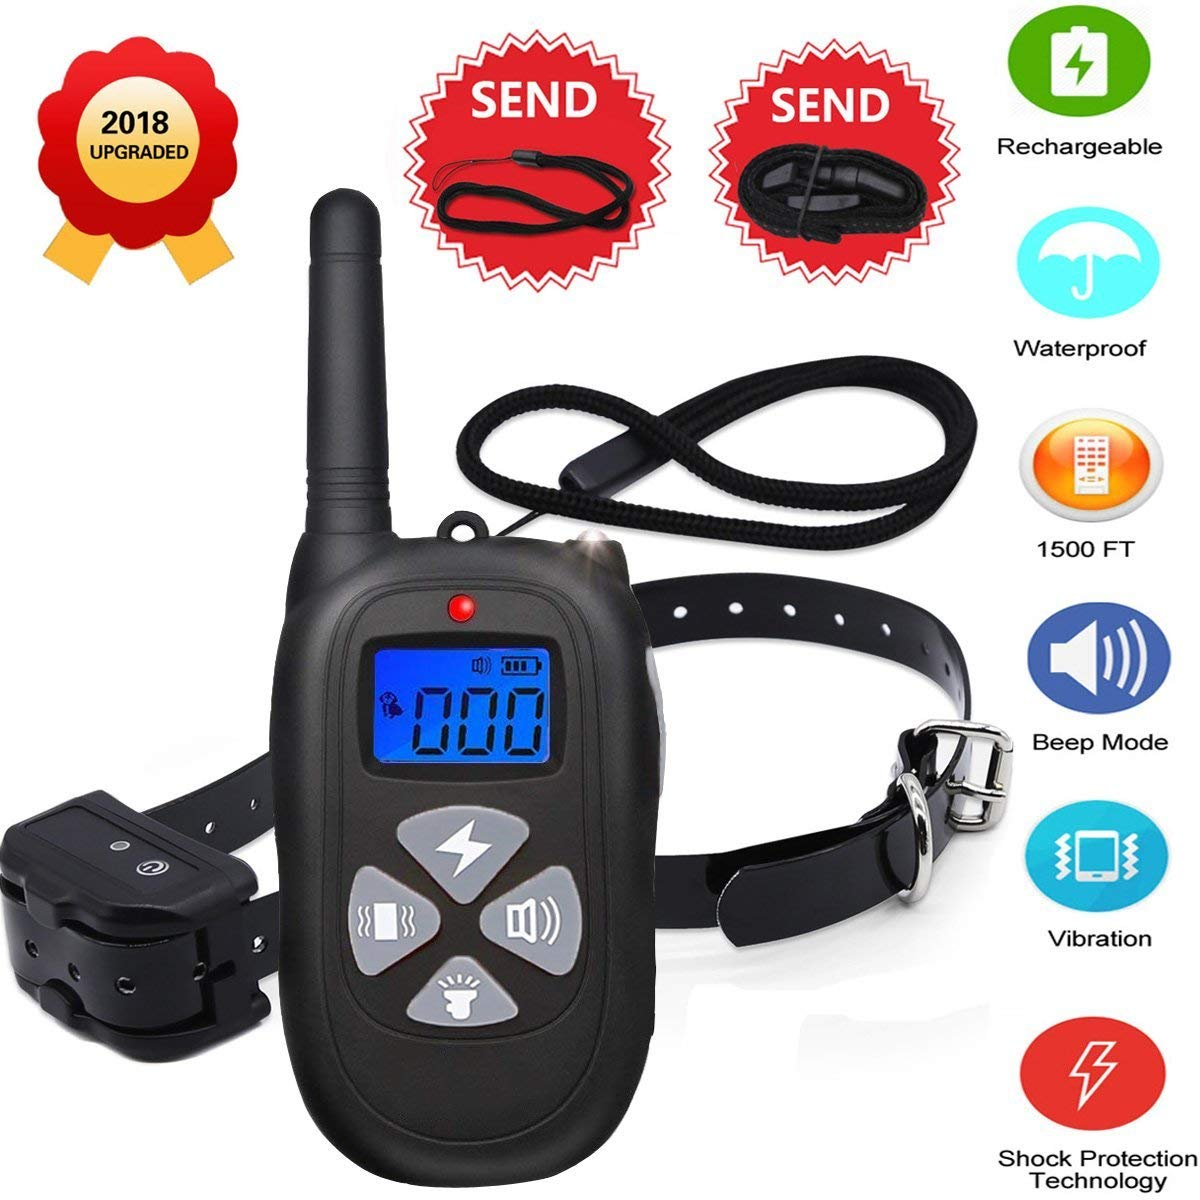 NEW2019 Remote Dog Training Collar 1450ft Waterproof and Rechargeable Electric Shock Collar with Beep 100 Level Vibration 100 Level Shock Shock Protection Technology Fits All Size Puppies